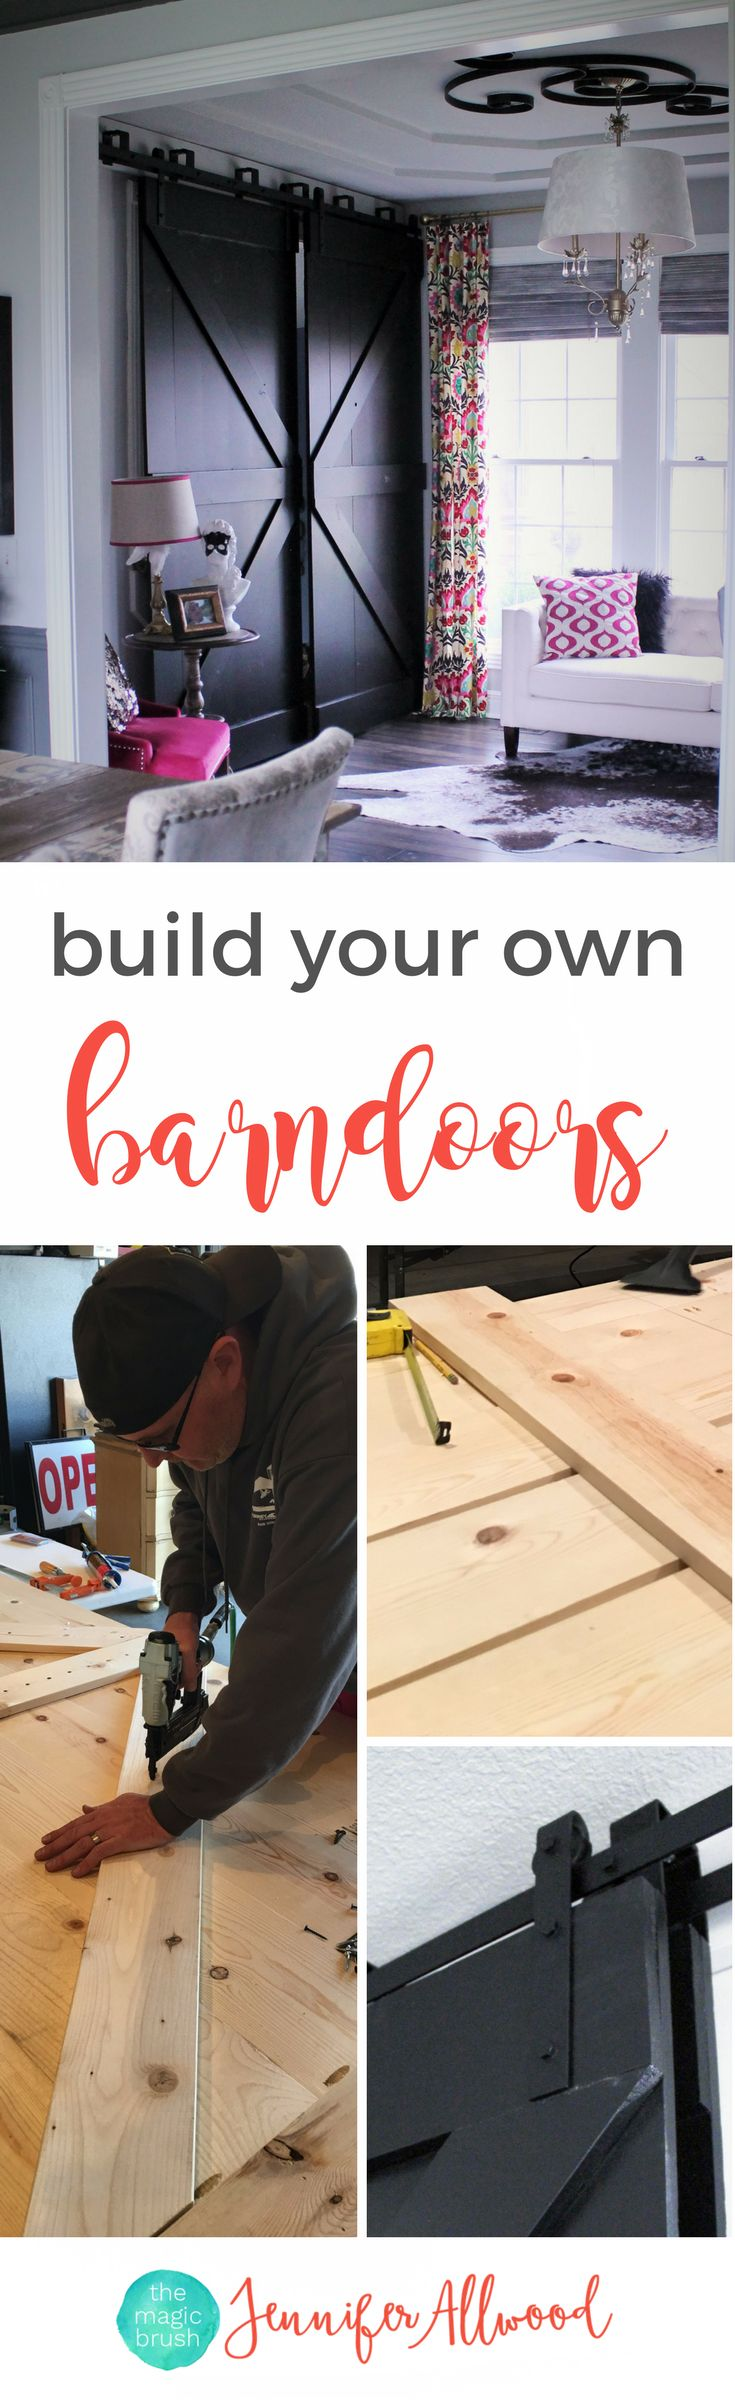 Free Tutorial: build your own black bypass barndoors using whitewood | DIY Farmhouse barndoors | Home Office Idea by themagicbrushinc.com | Black Barndoors and painted barndoors